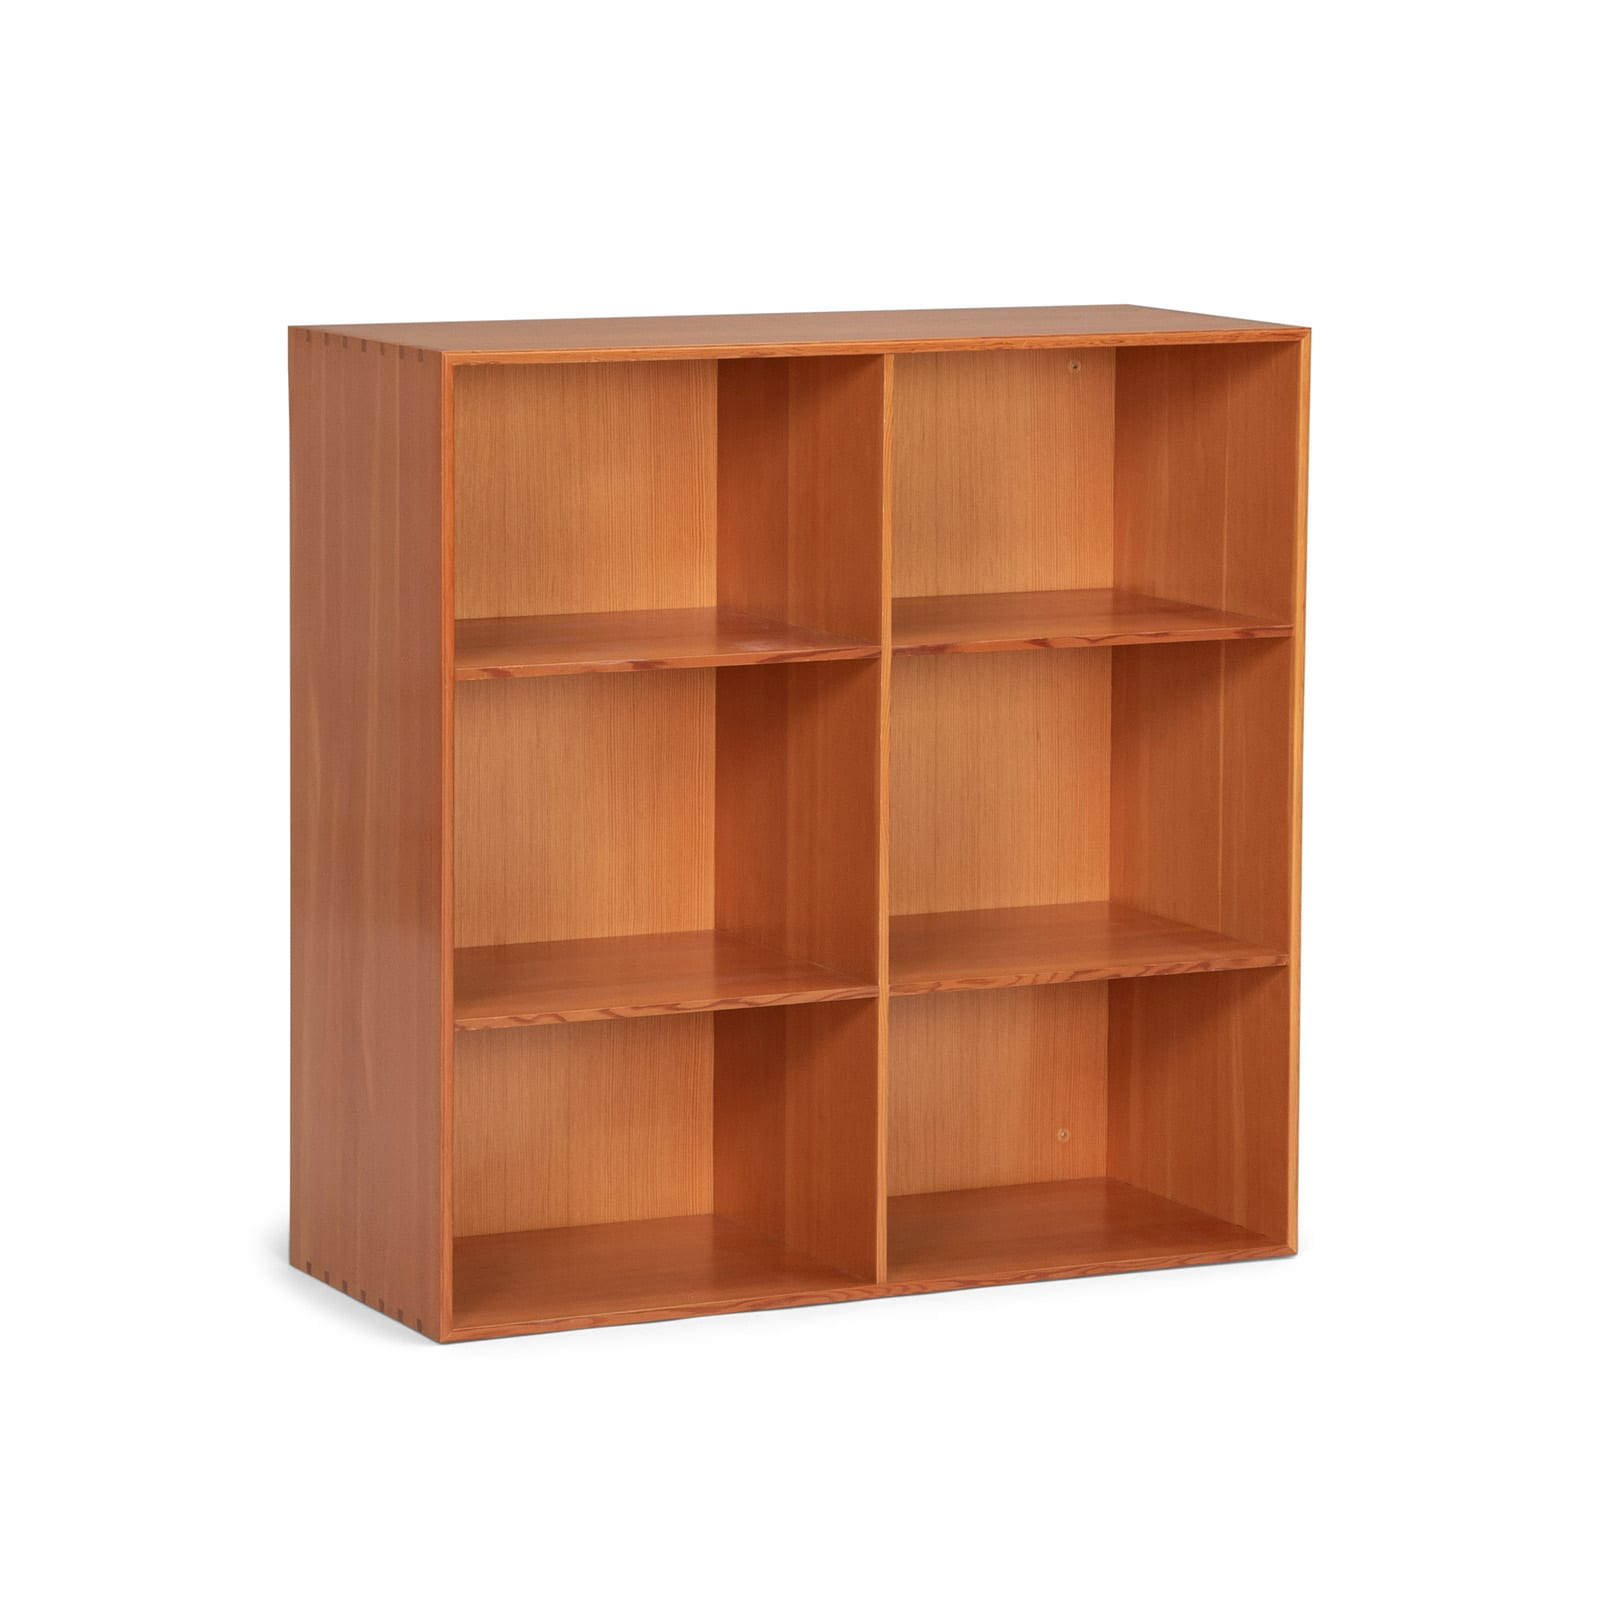 Set of wall mounted bookcases